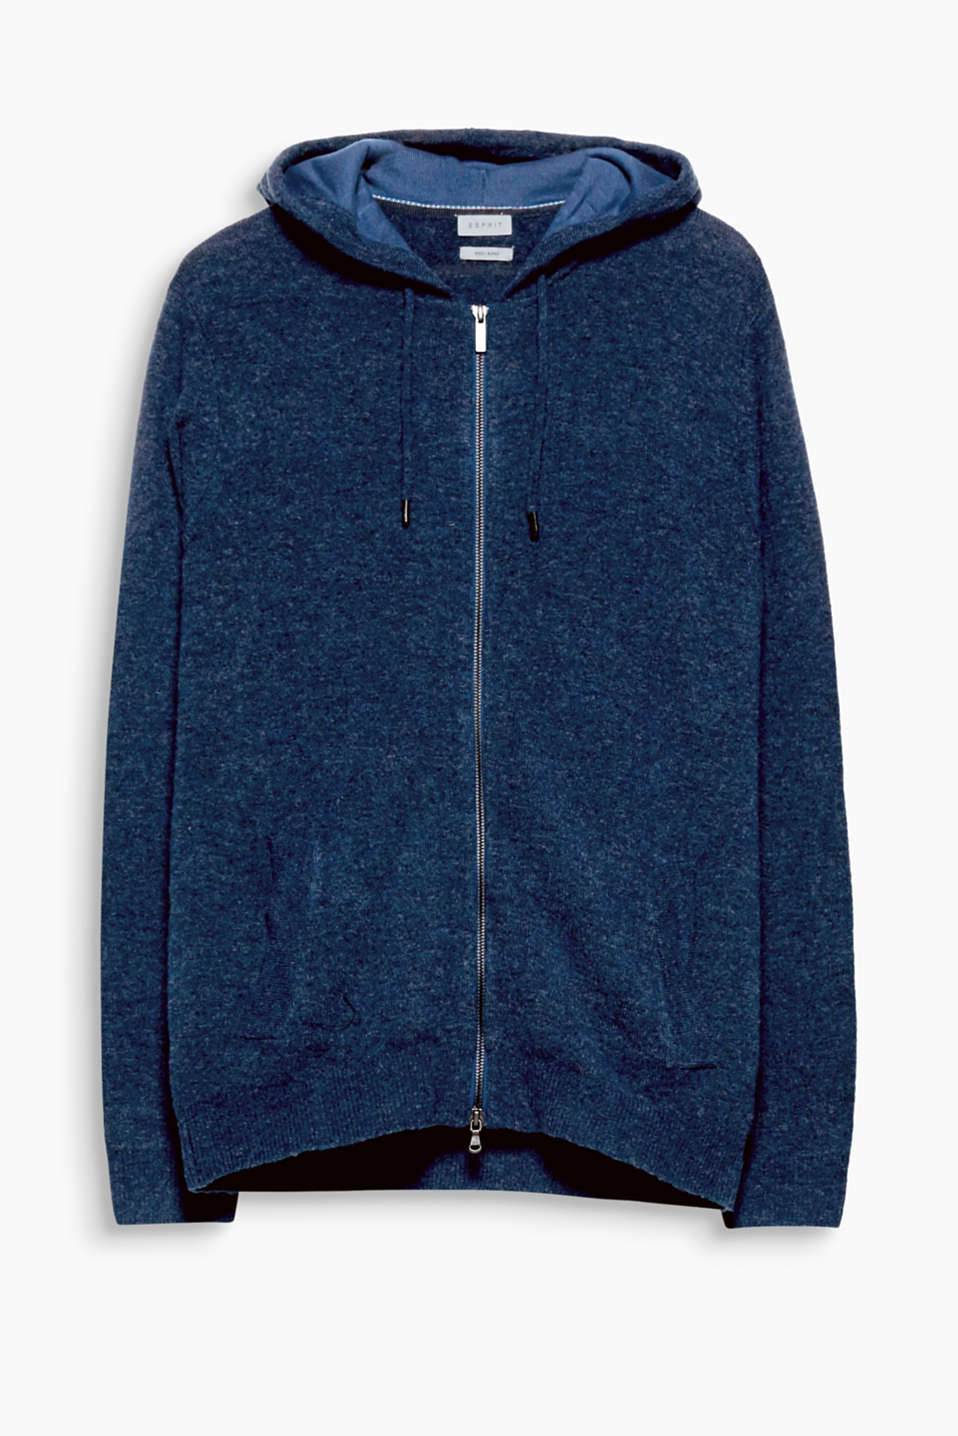 Elegant leisurewear in fine knit yarn! This hoodie is crafted from supersoft blended wool.